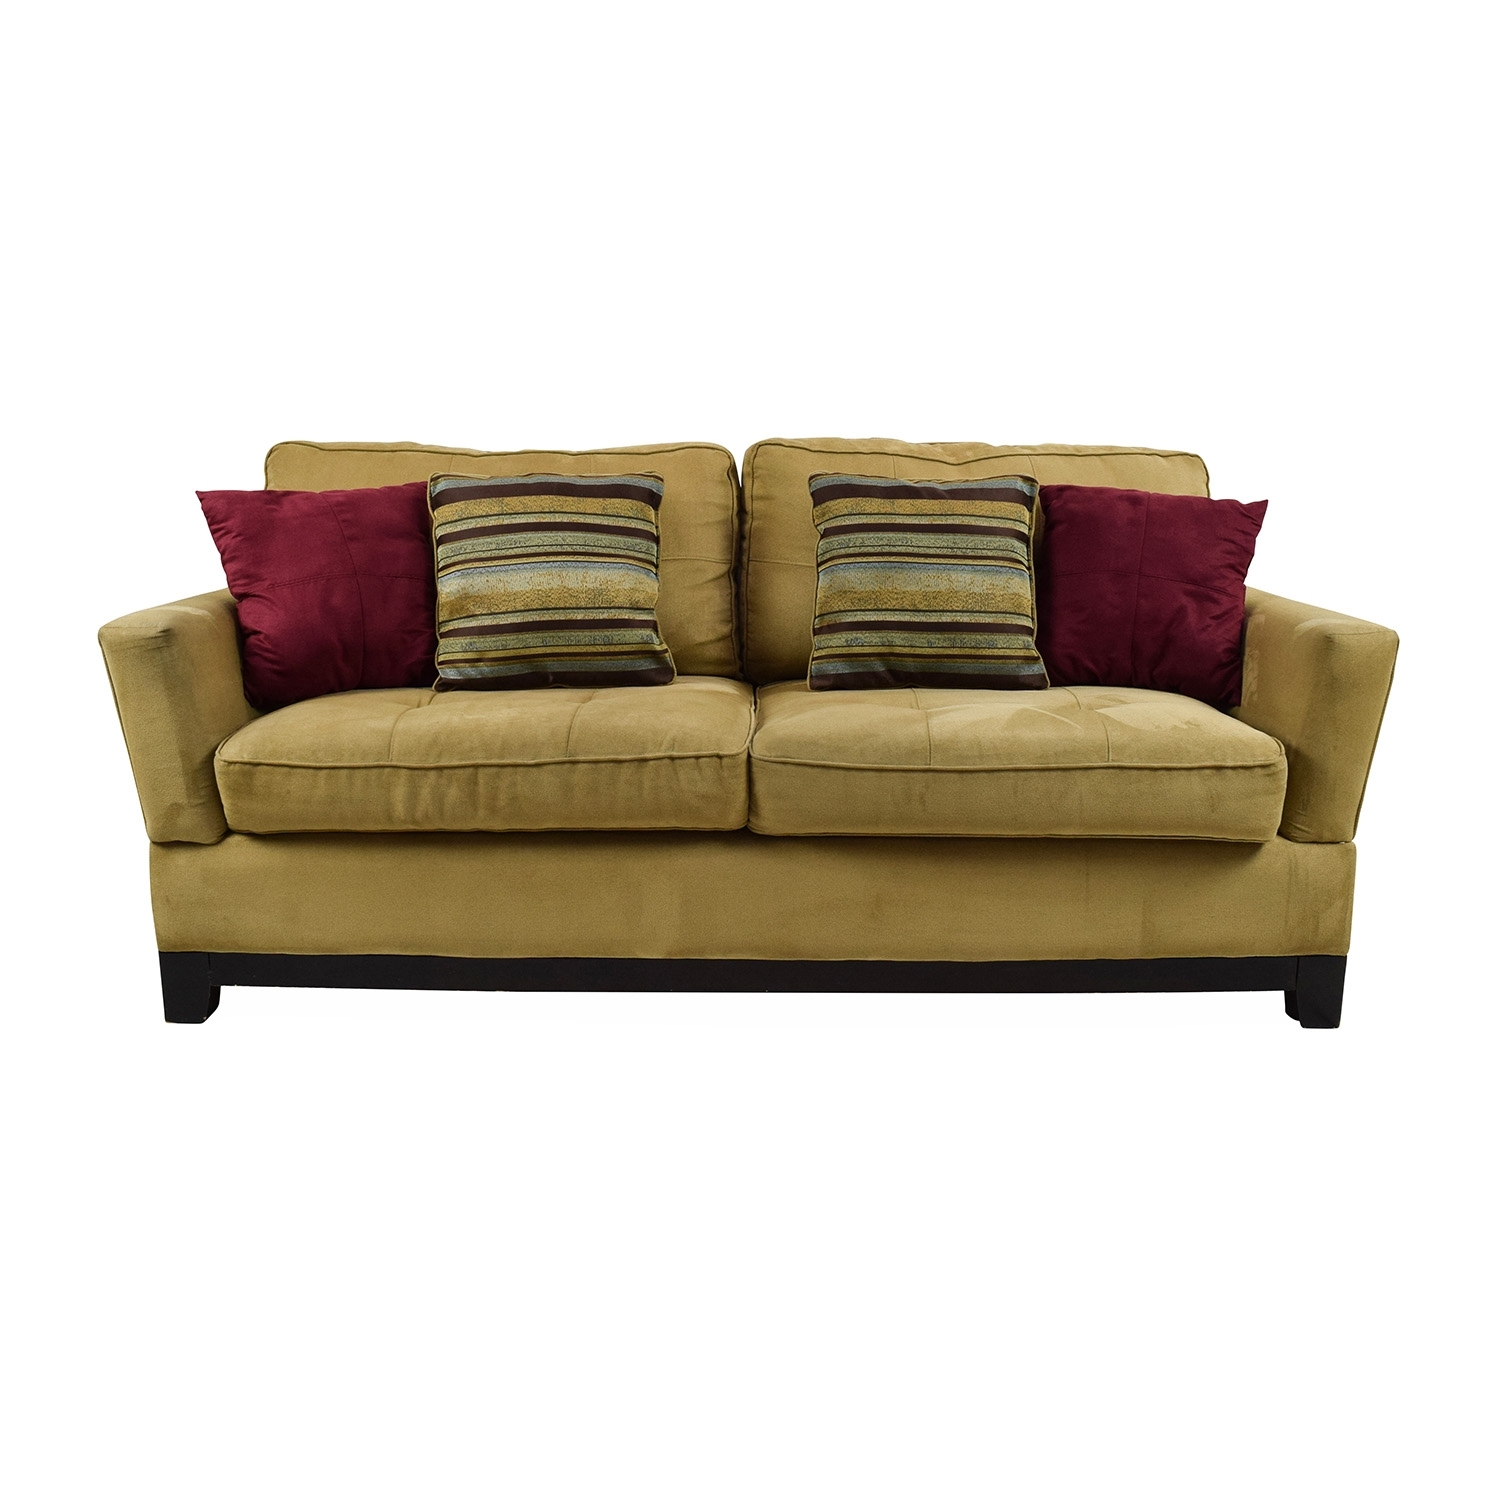 78% Off - Jennifer Convertibles Jennifer Convertibles Tan Sofa / Sofas inside Jennifer Convertibles Sectional Sofas (Image 2 of 10)